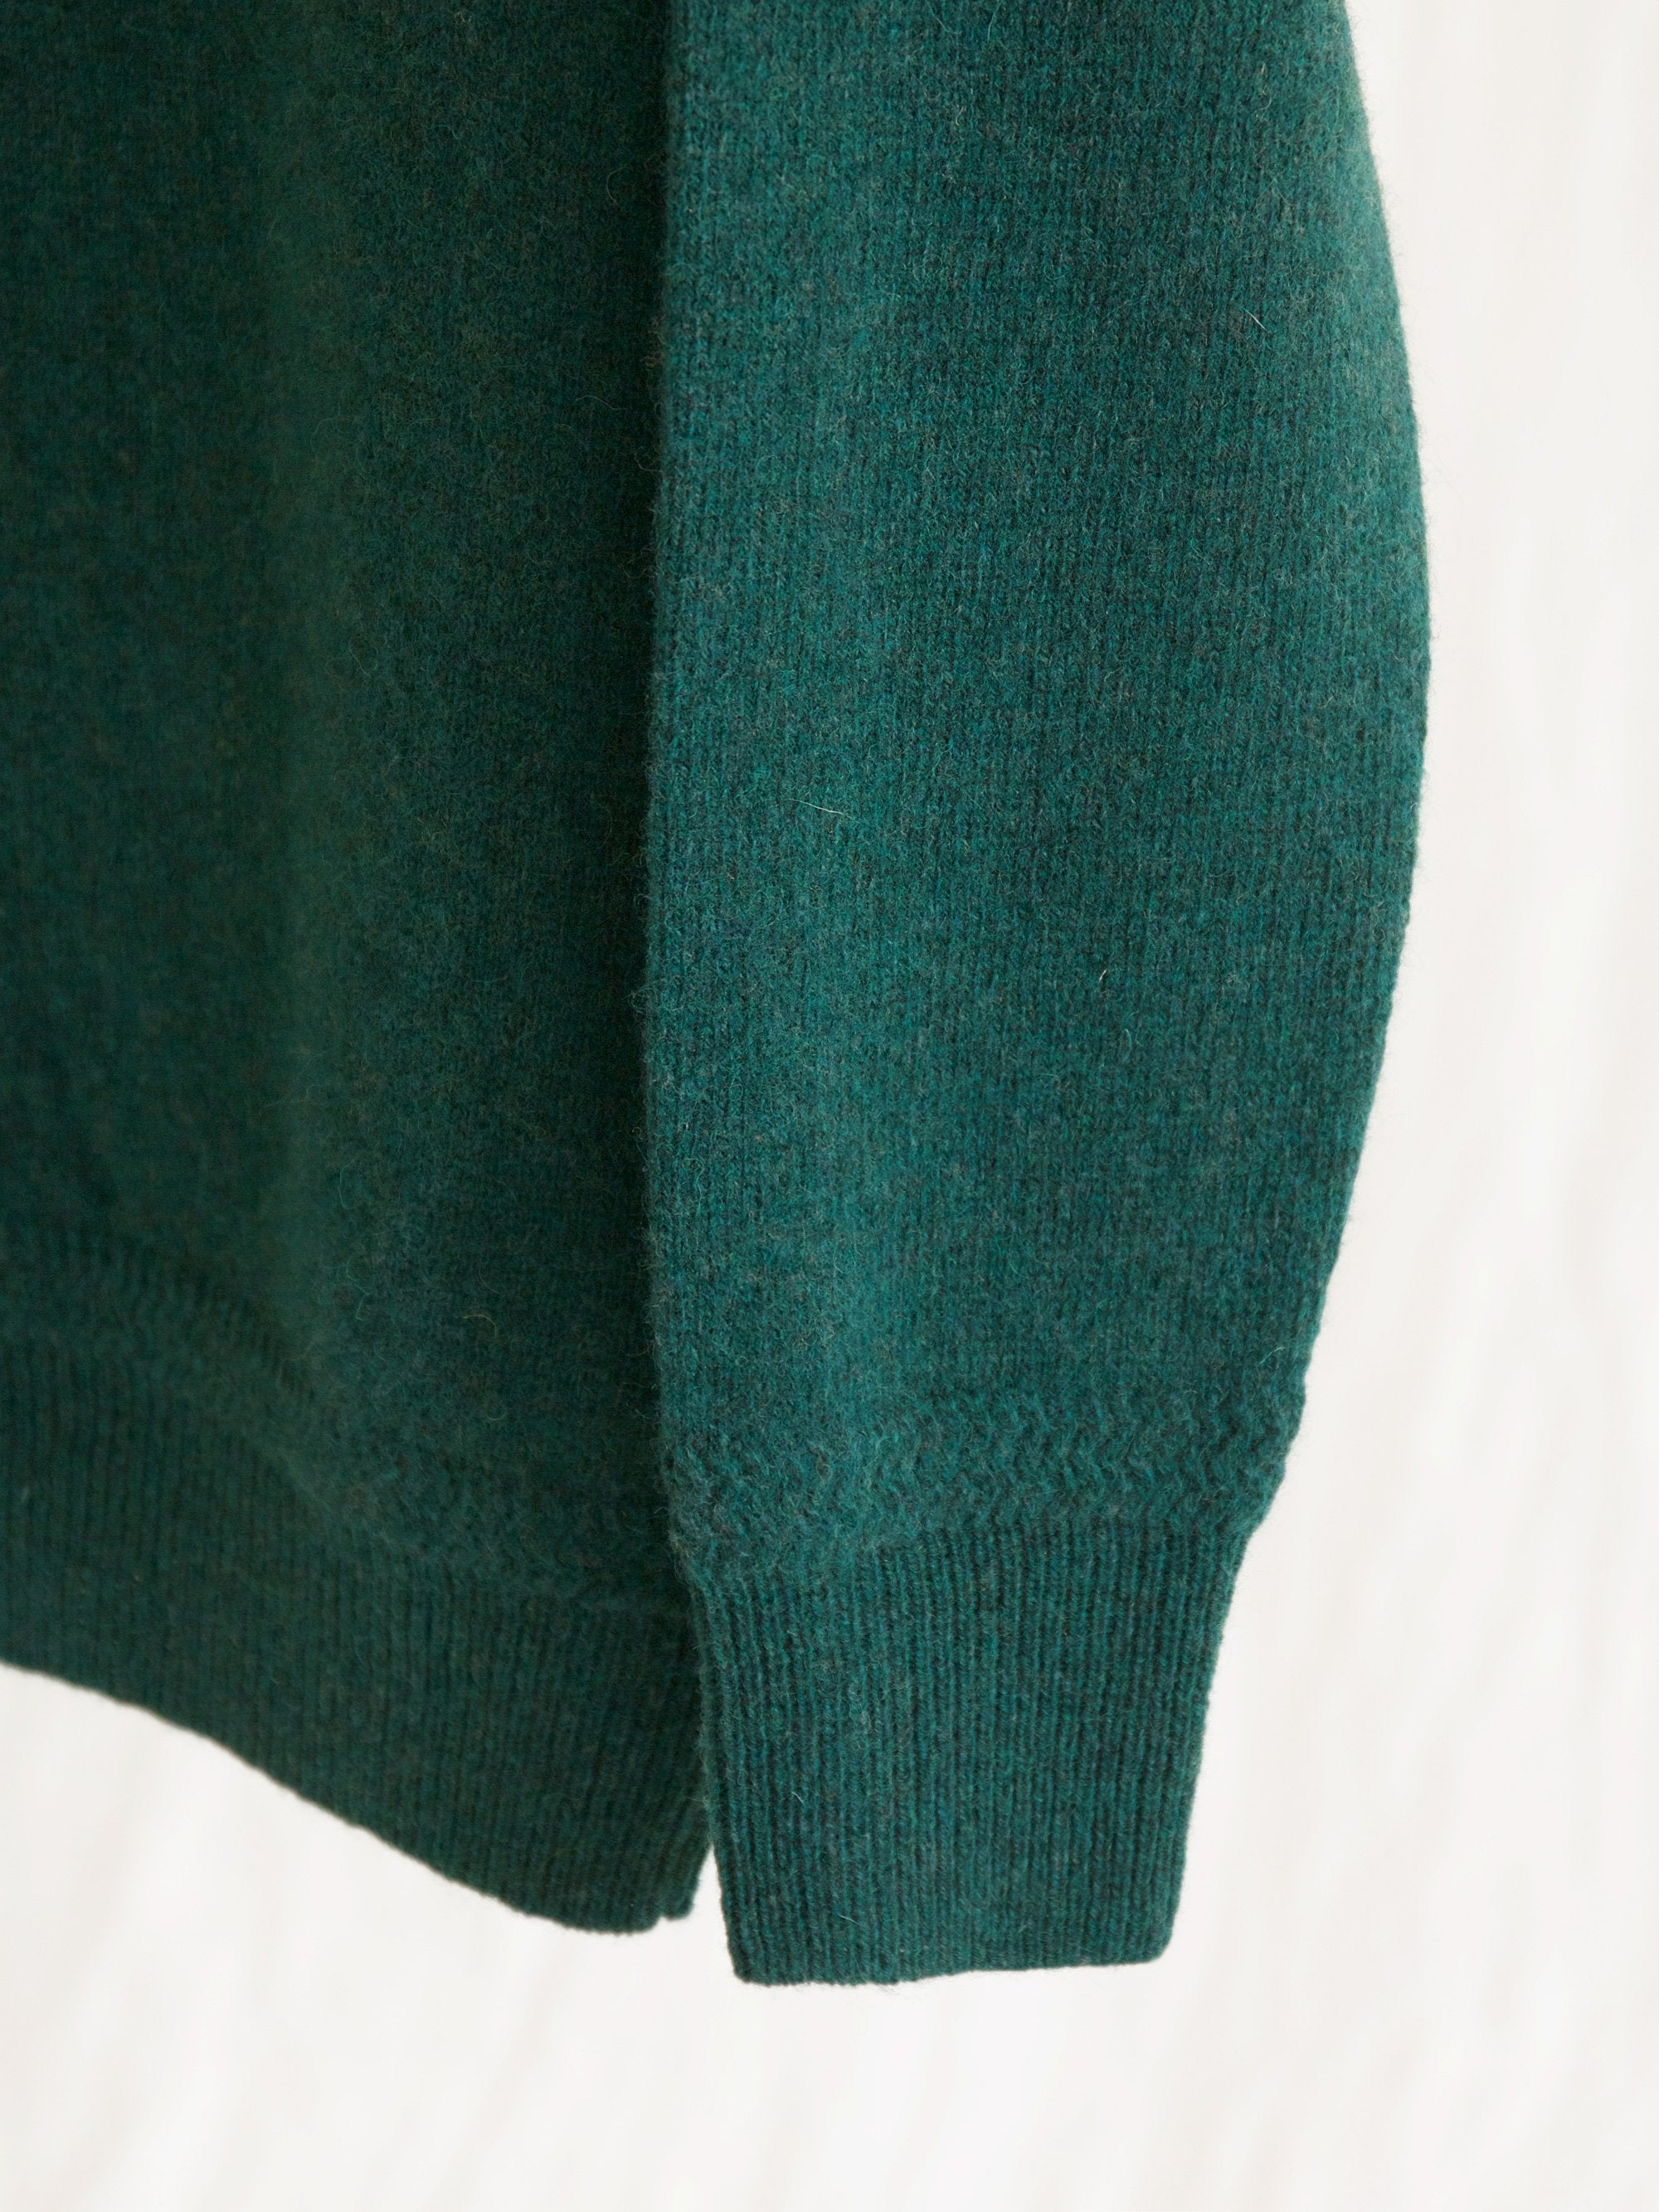 Namu Shop - Phlannel Shetland Wool Crewneck Sweater - Bottle Green (Women's)